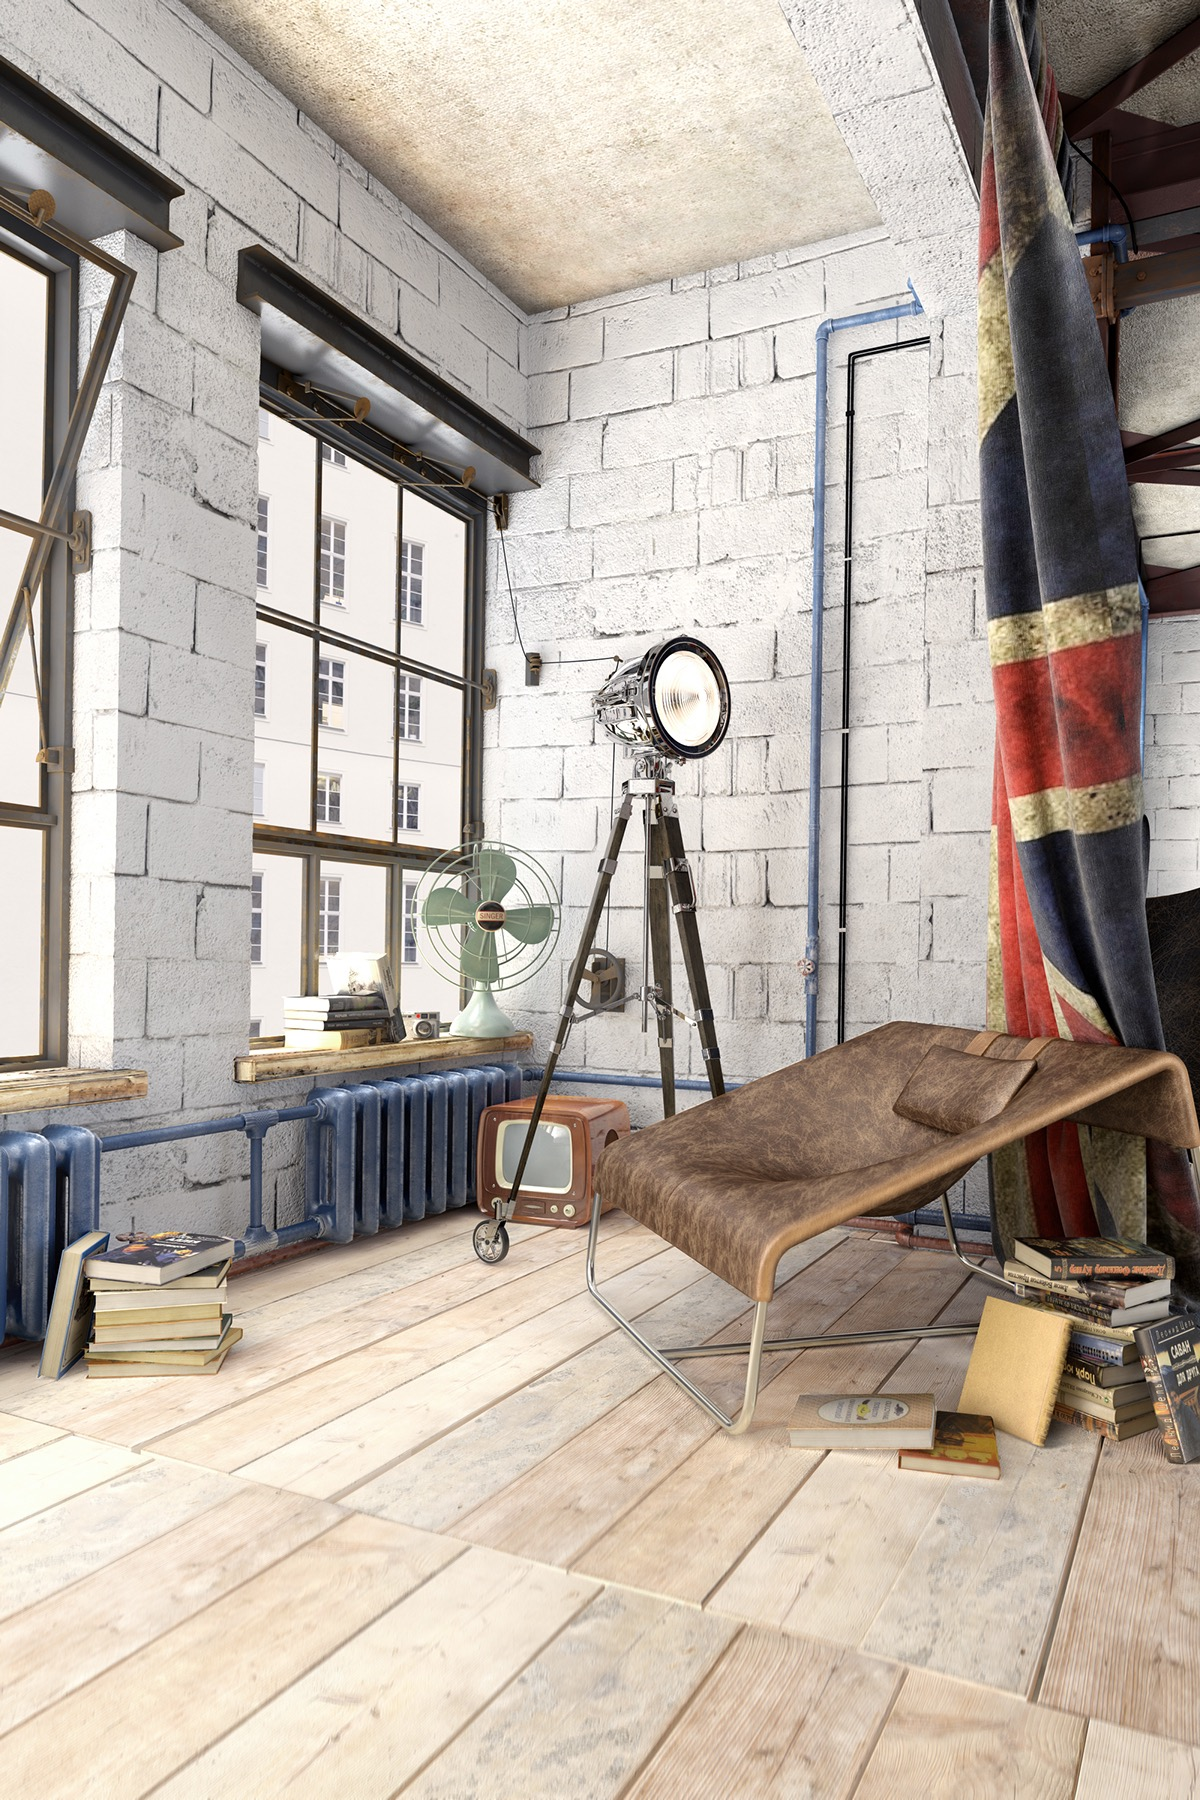 White Painted Walls - 2 loft ideas for the creative artist